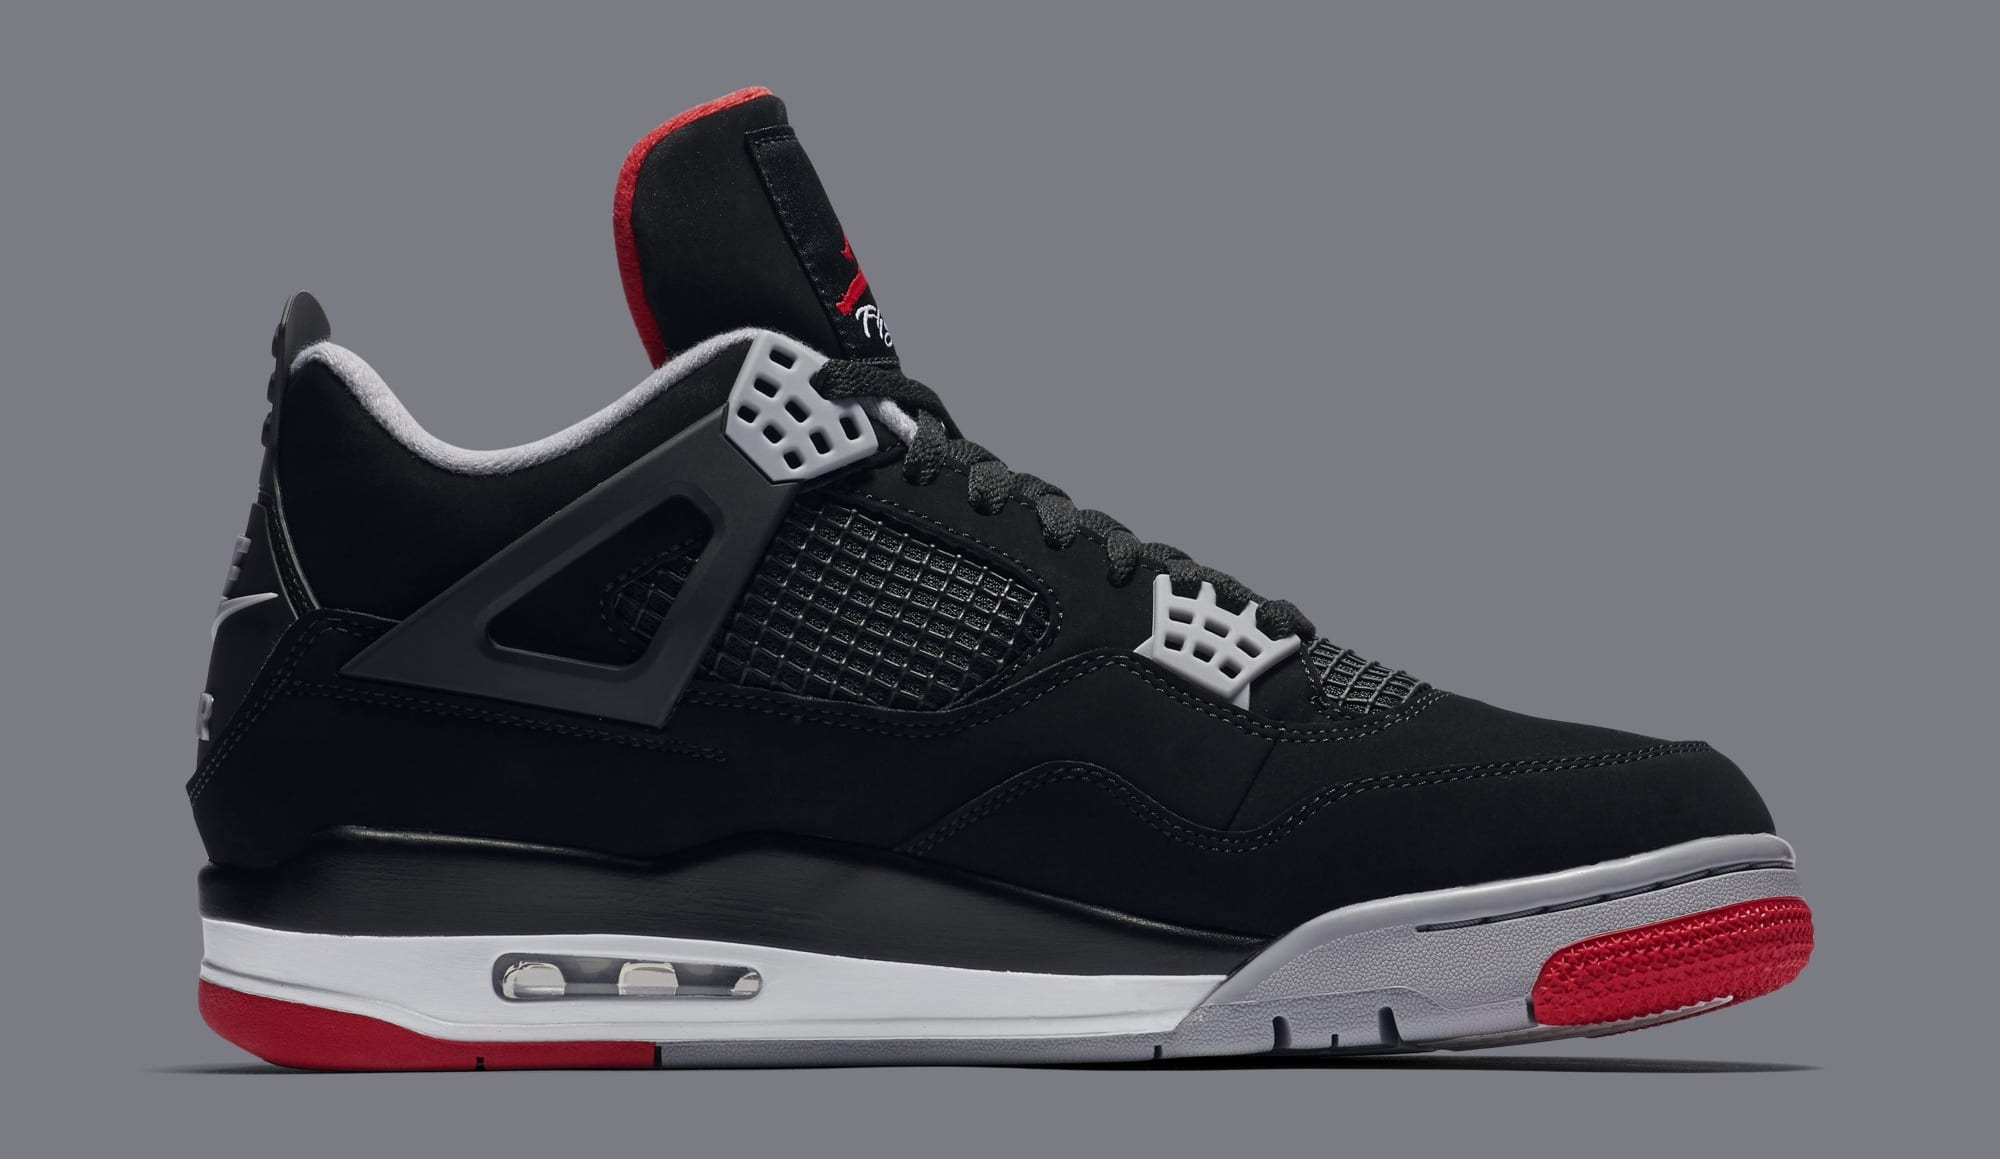 new concept e499c c91b1 Air Jordan 4 Retro 'Black/Cement Grey/Summit White/Fire Red ...